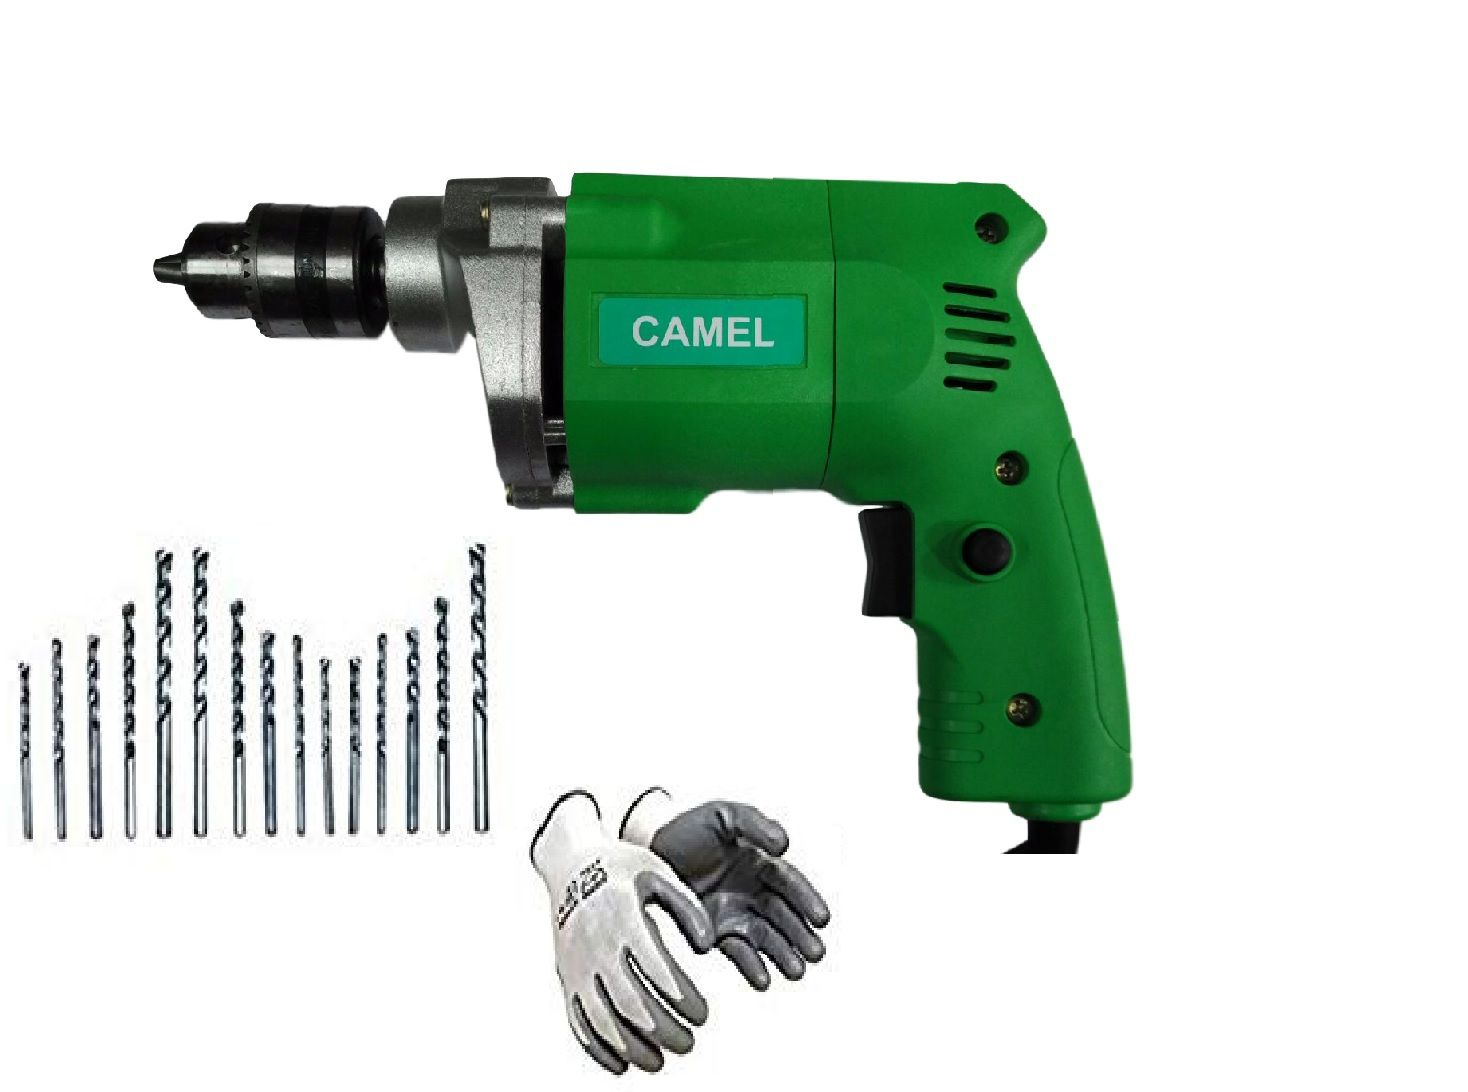 Camel 350W 10mm Corded Drill Machine with 15 Pcs High Quality Drill Bits + Safety Gloves